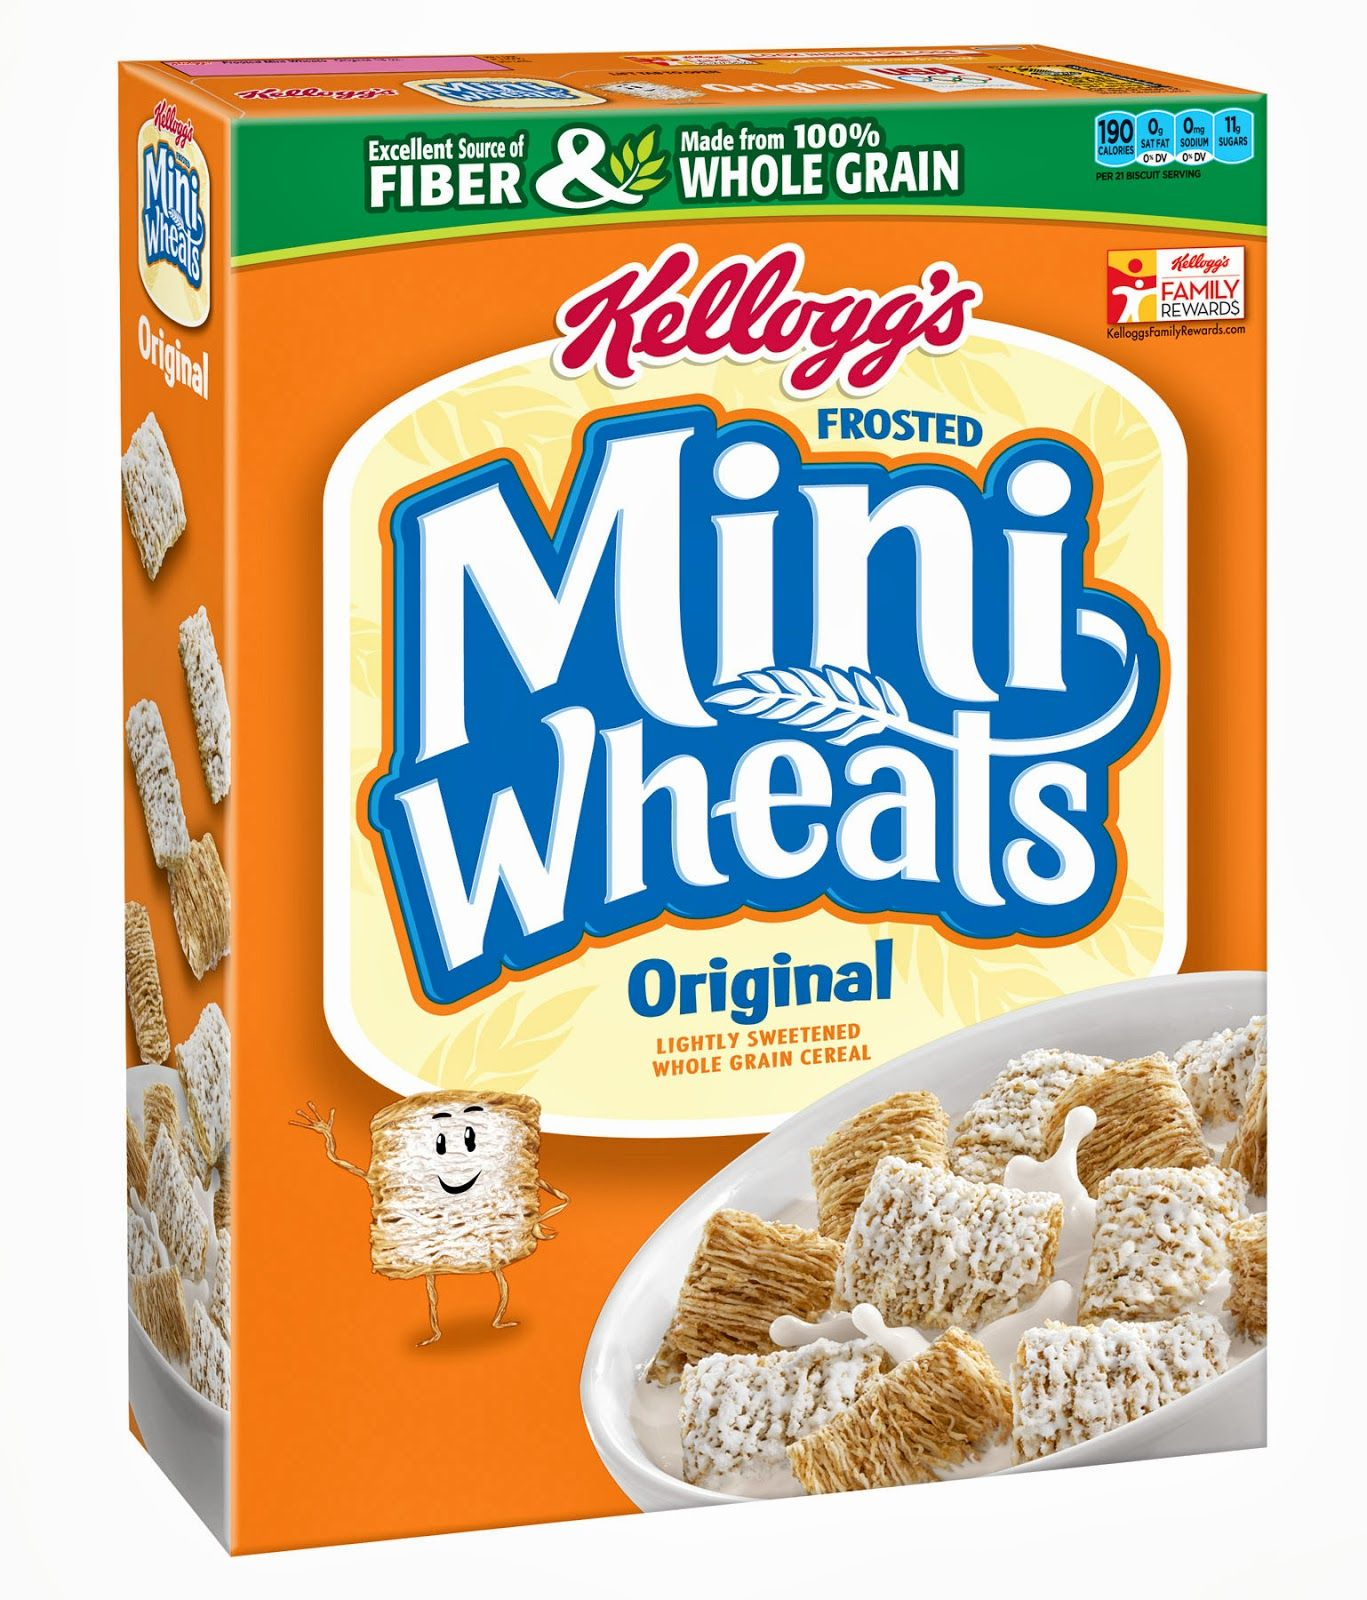 Make Every Day A Big Day With Frosted Mini Wheats Pcbigday For